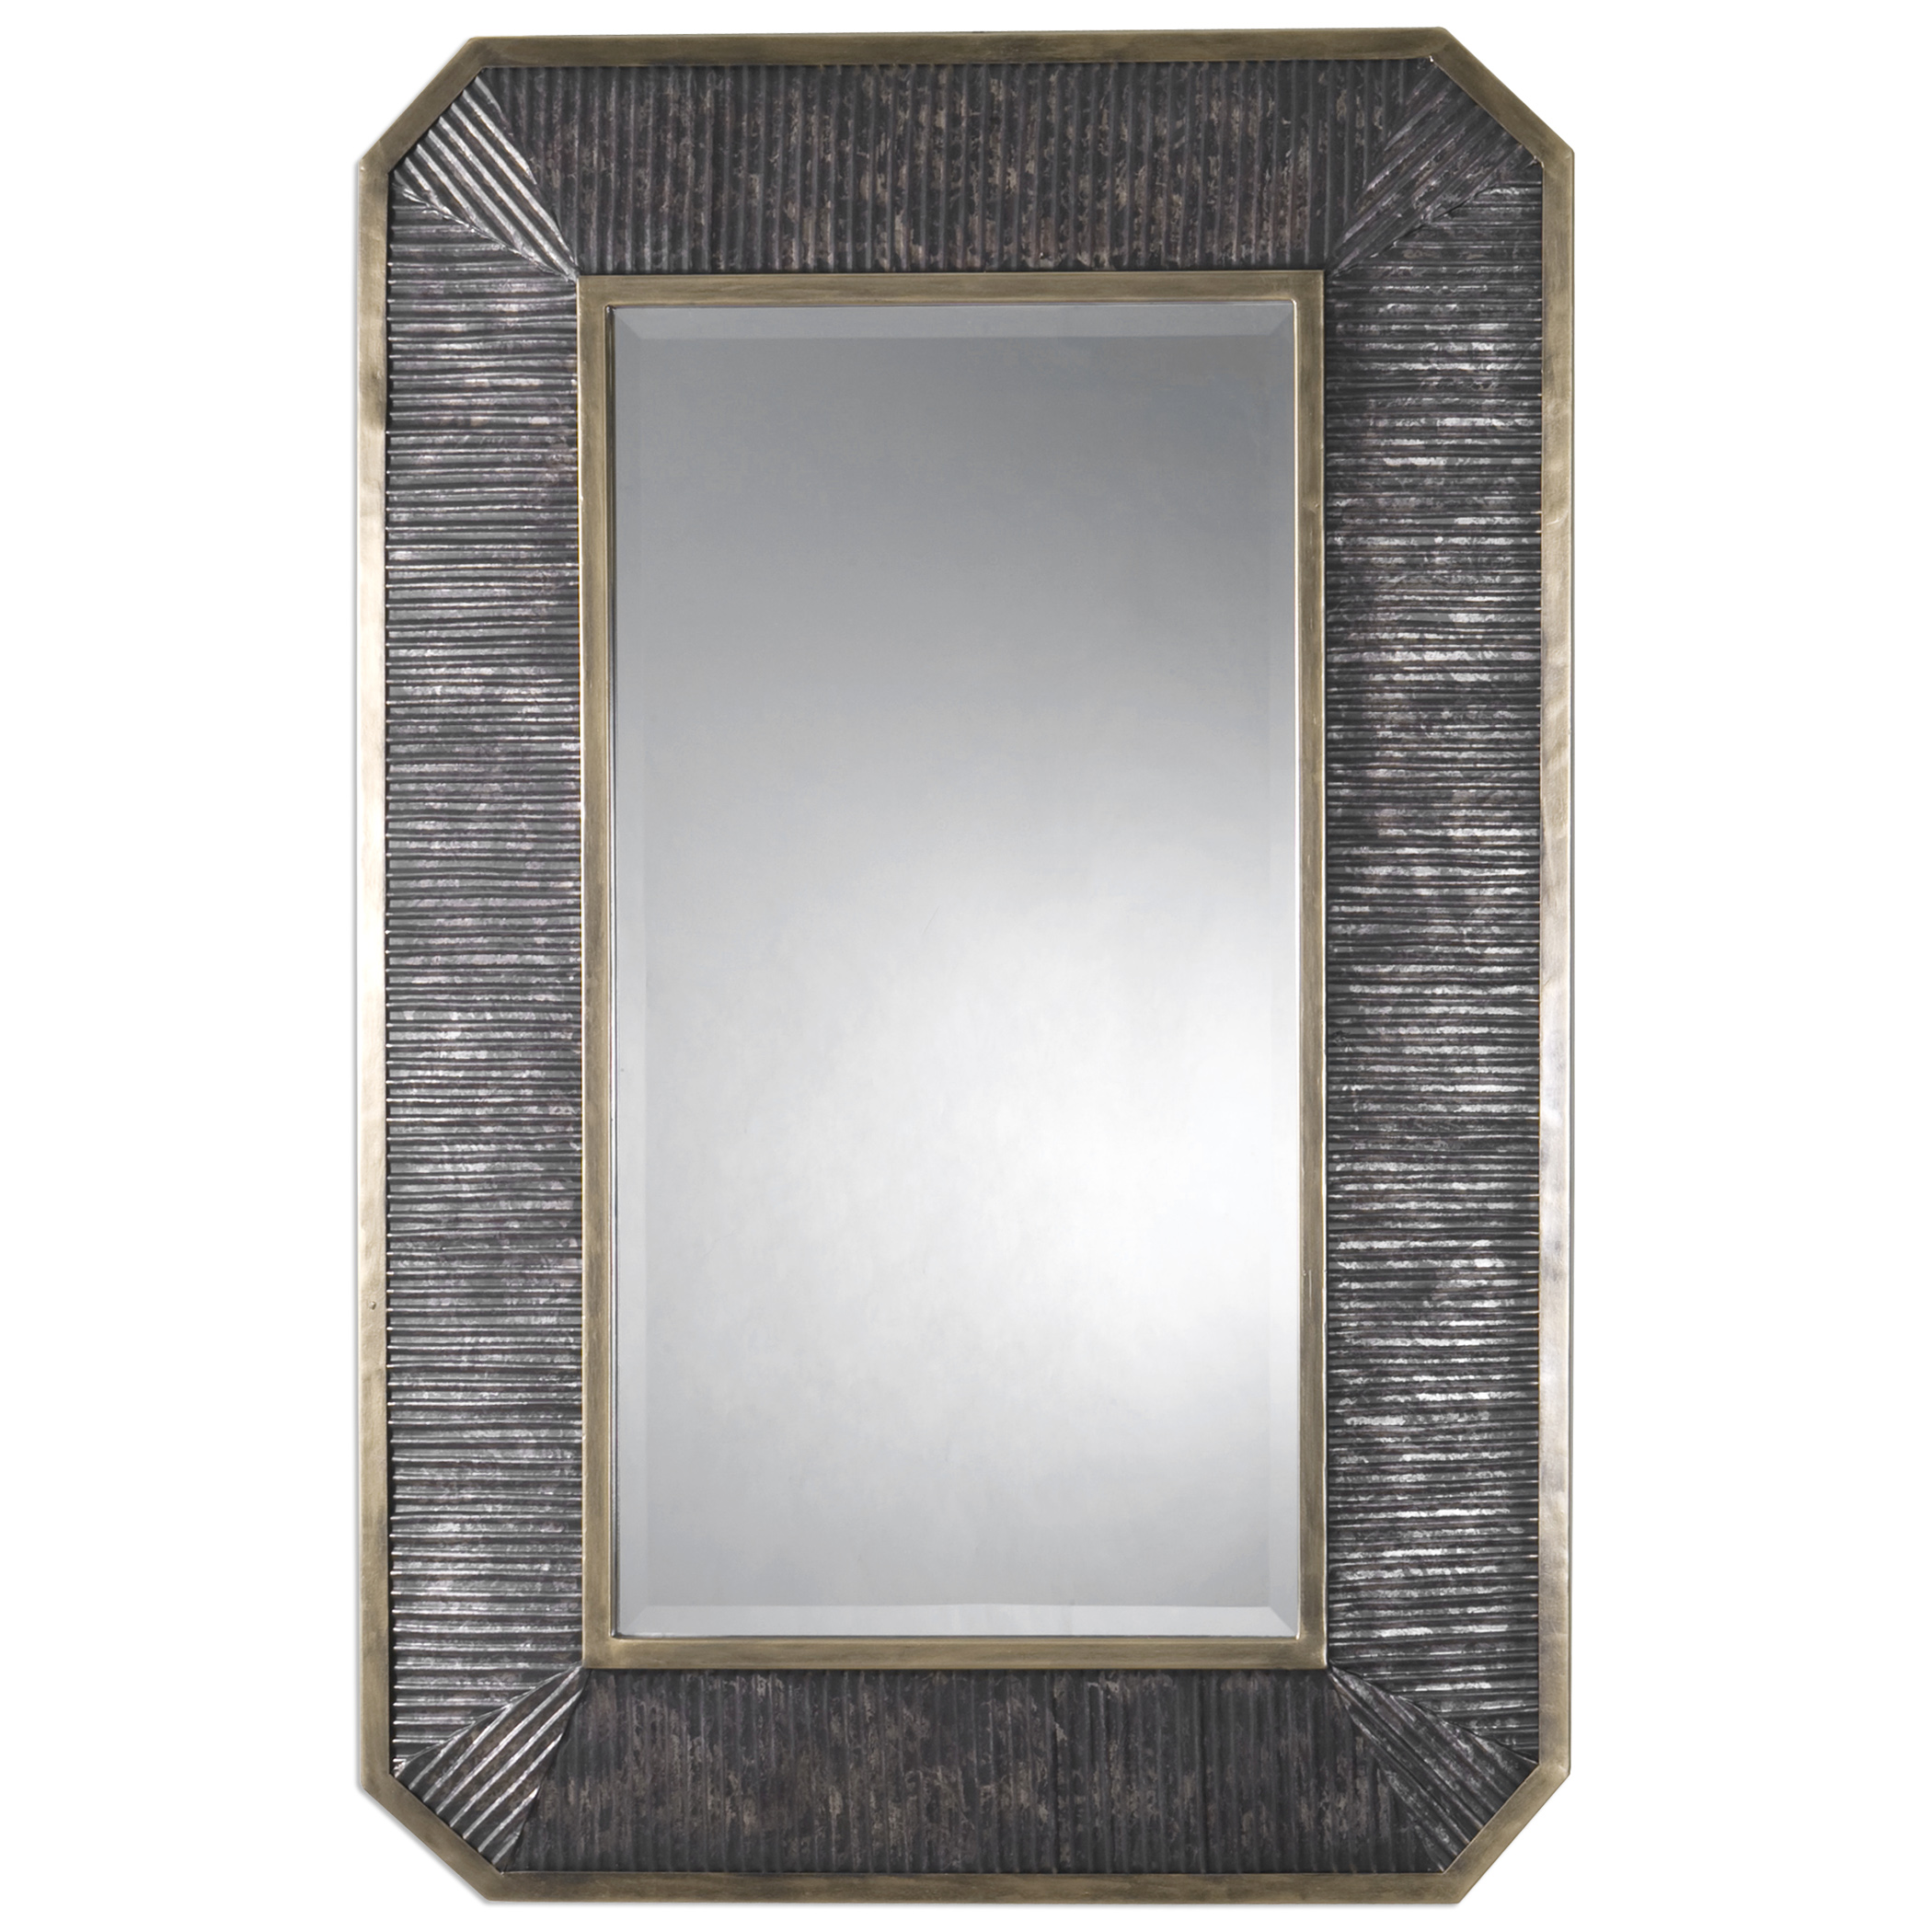 Uttermost Mirrors Isaiah Ribbed Bronze Mirror - Item Number: 09087